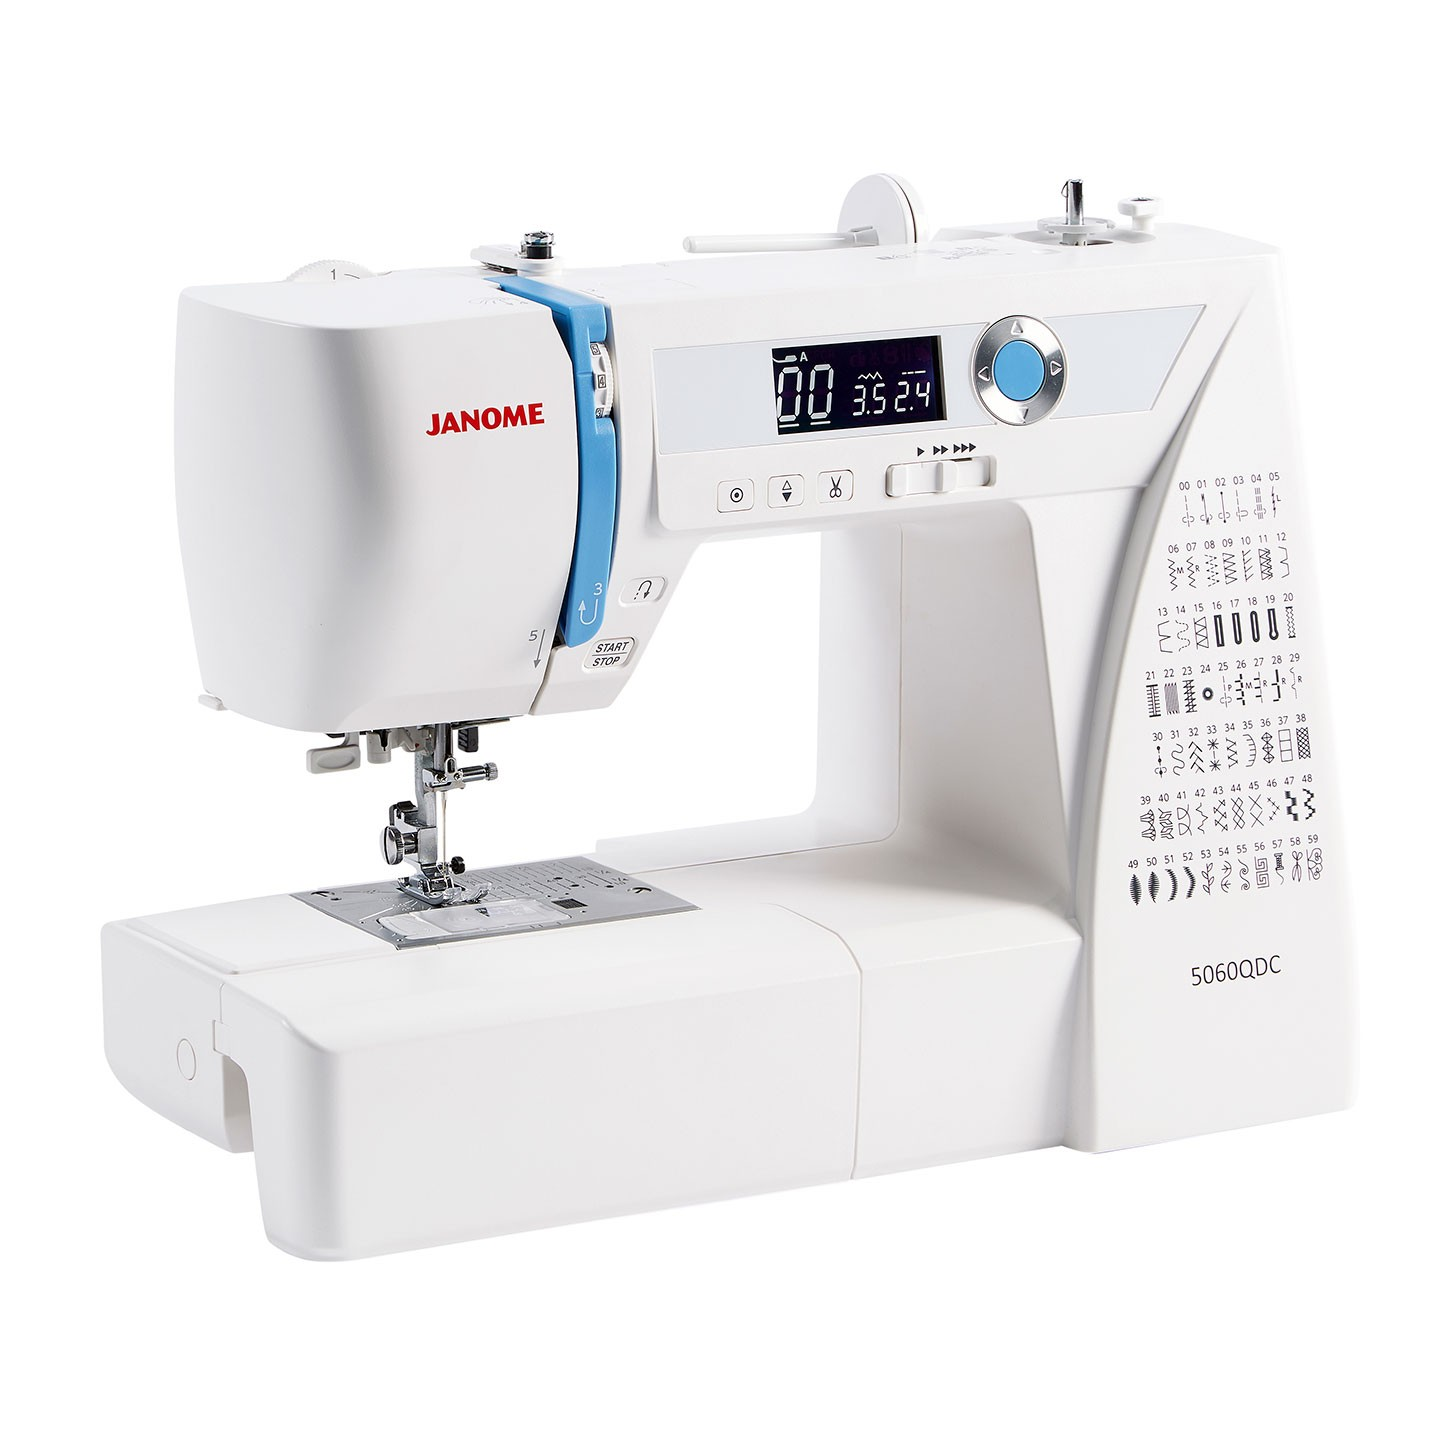 Janome 5060QDC - Tullys Sewing Machines